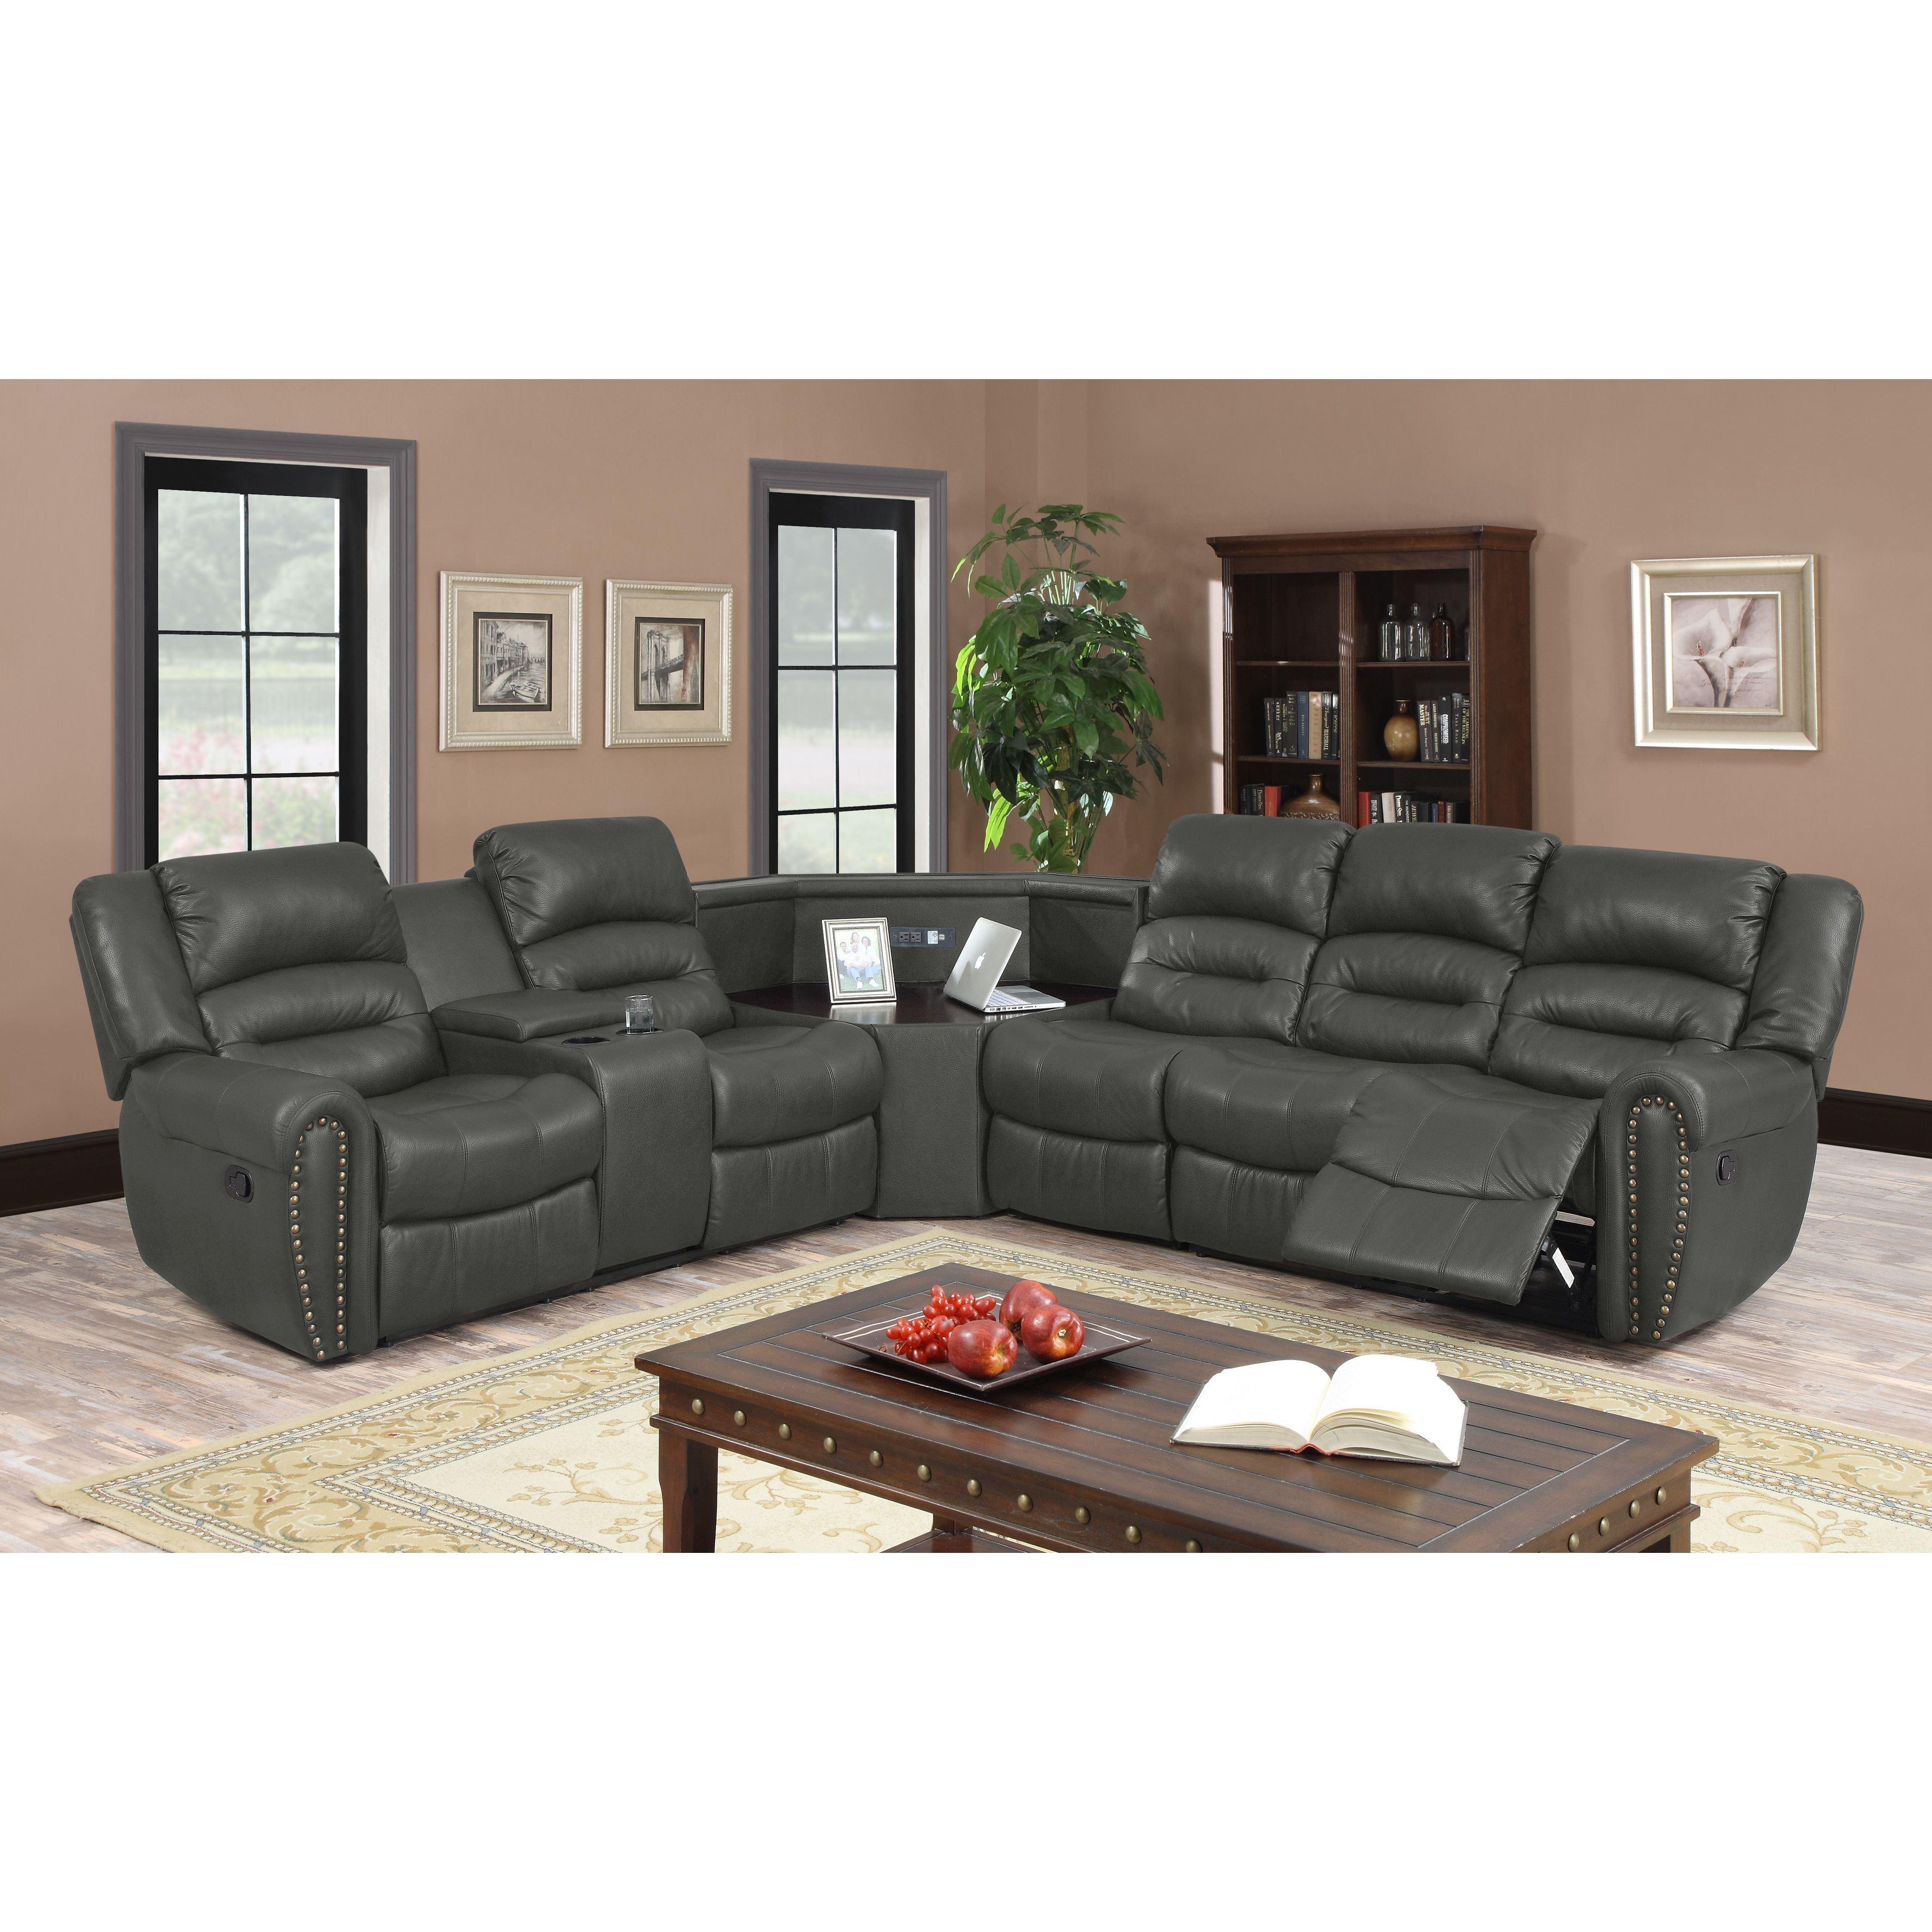 Shop Wayfair For Sectional Sofas To Match Every Style And Budget Enjoy Free Shipping On Most Stuff Even Big Stuff Home Theater Sectional Sofa Reclining